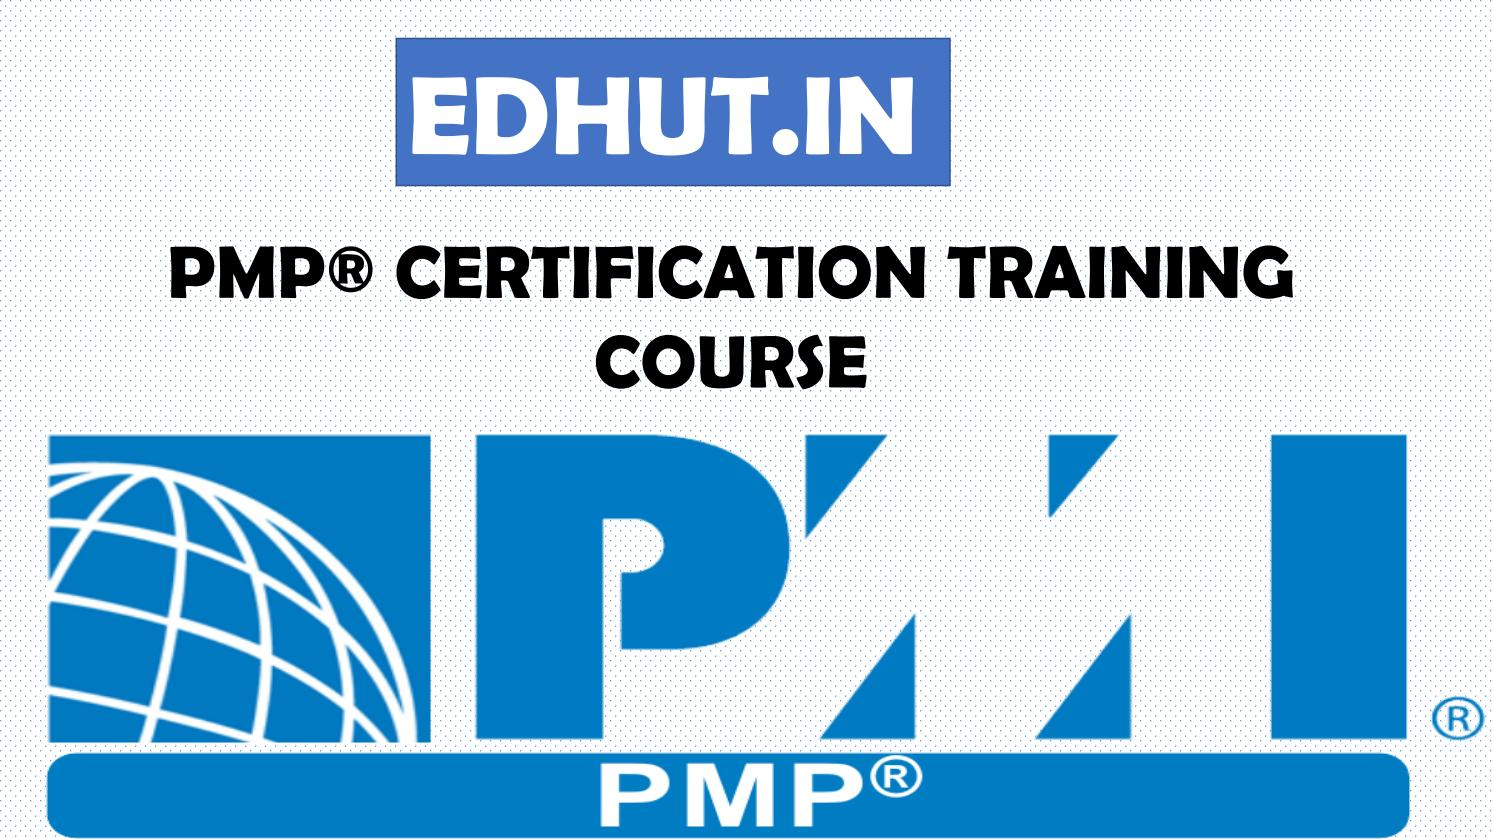 Pmp Certification Training Course Edhut By Saleem Sdadmission Issuu